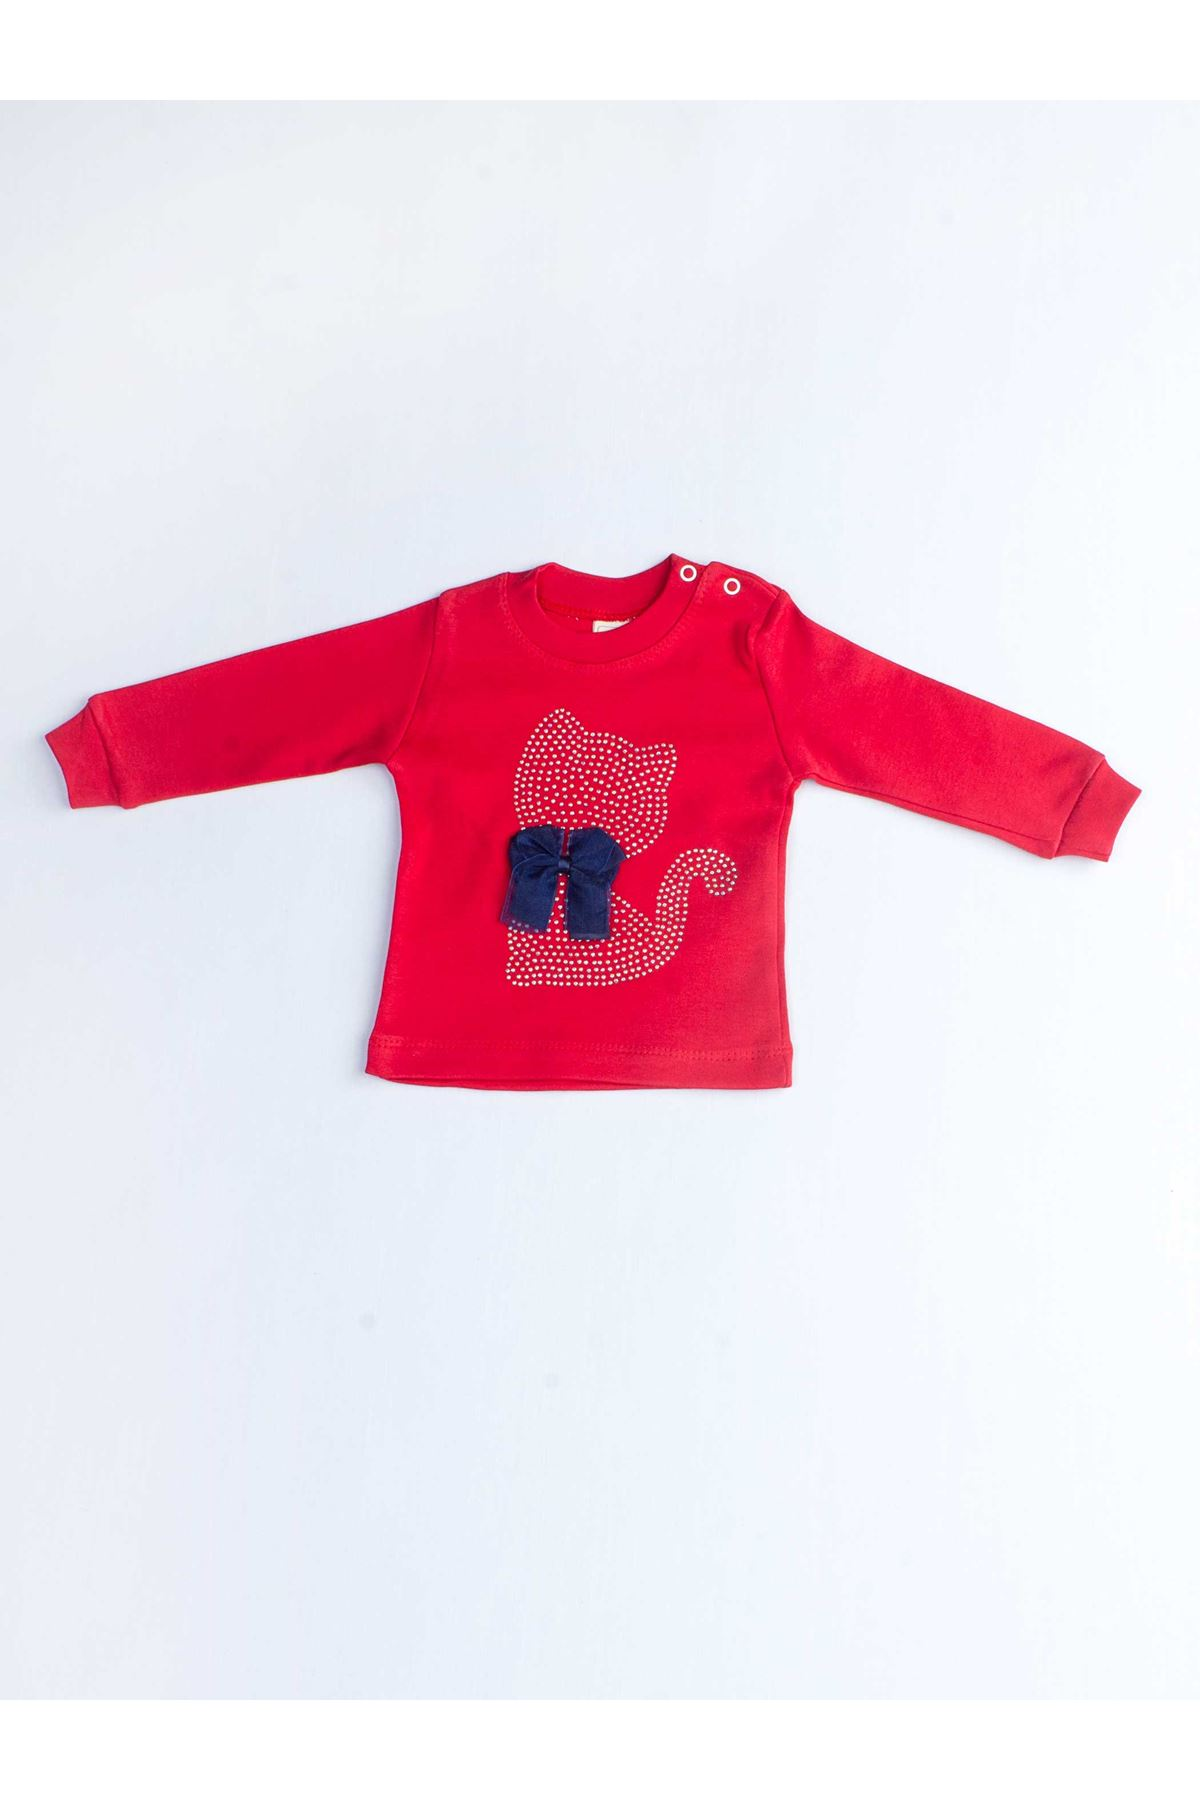 Red Baby Girl Cat Vetch 2 Piece Set Tracksuit Bottom Wear Top Outfit Cotton Casual Casual Outfit Models